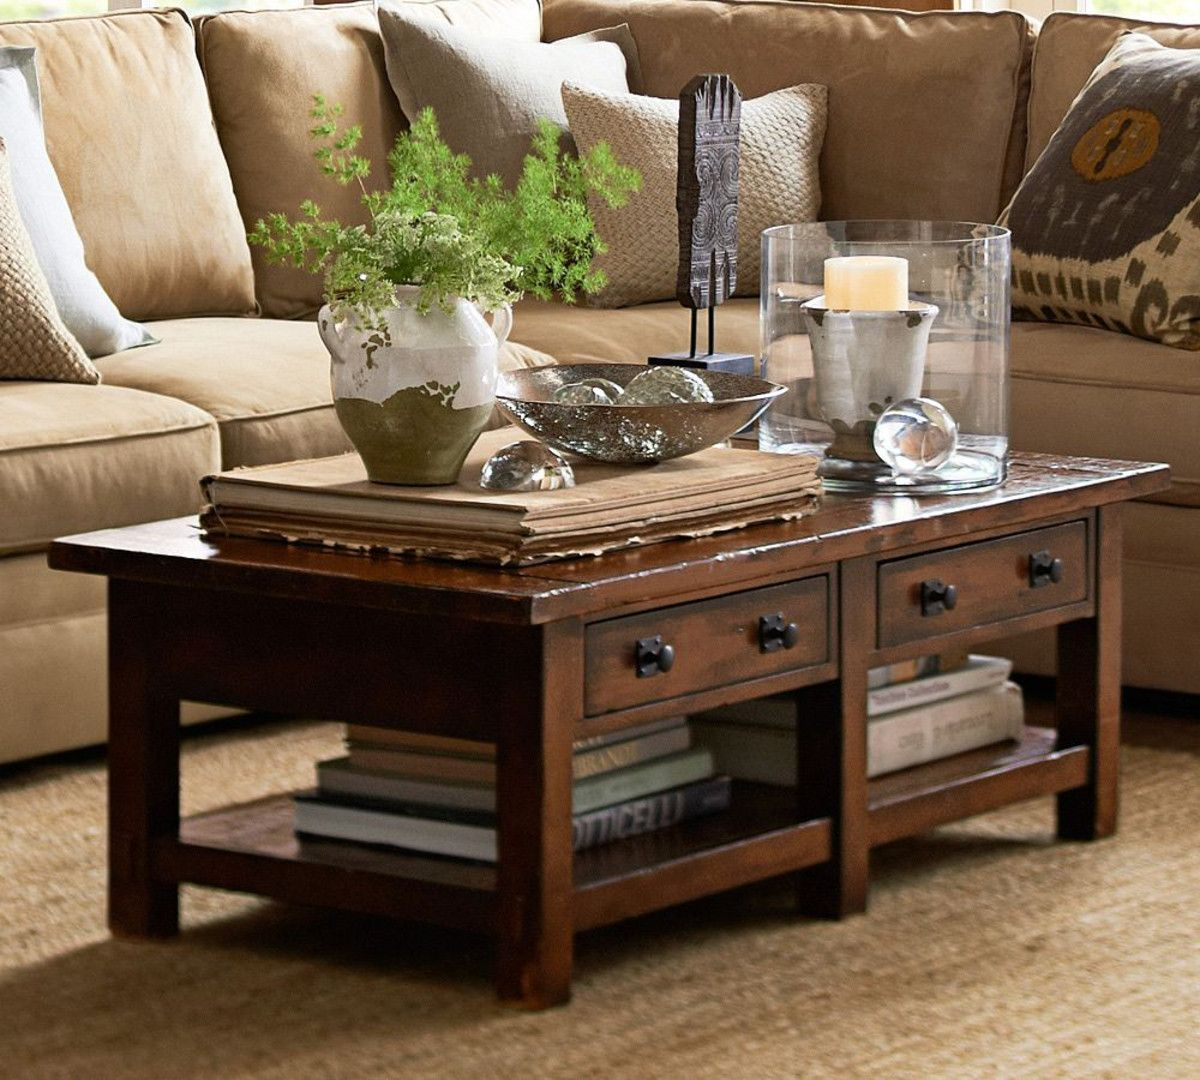 Decorate With Style 16 Chic Coffee Table Decor Ideas: Benchwright Coffee Table - Rustic Mahogany Stain